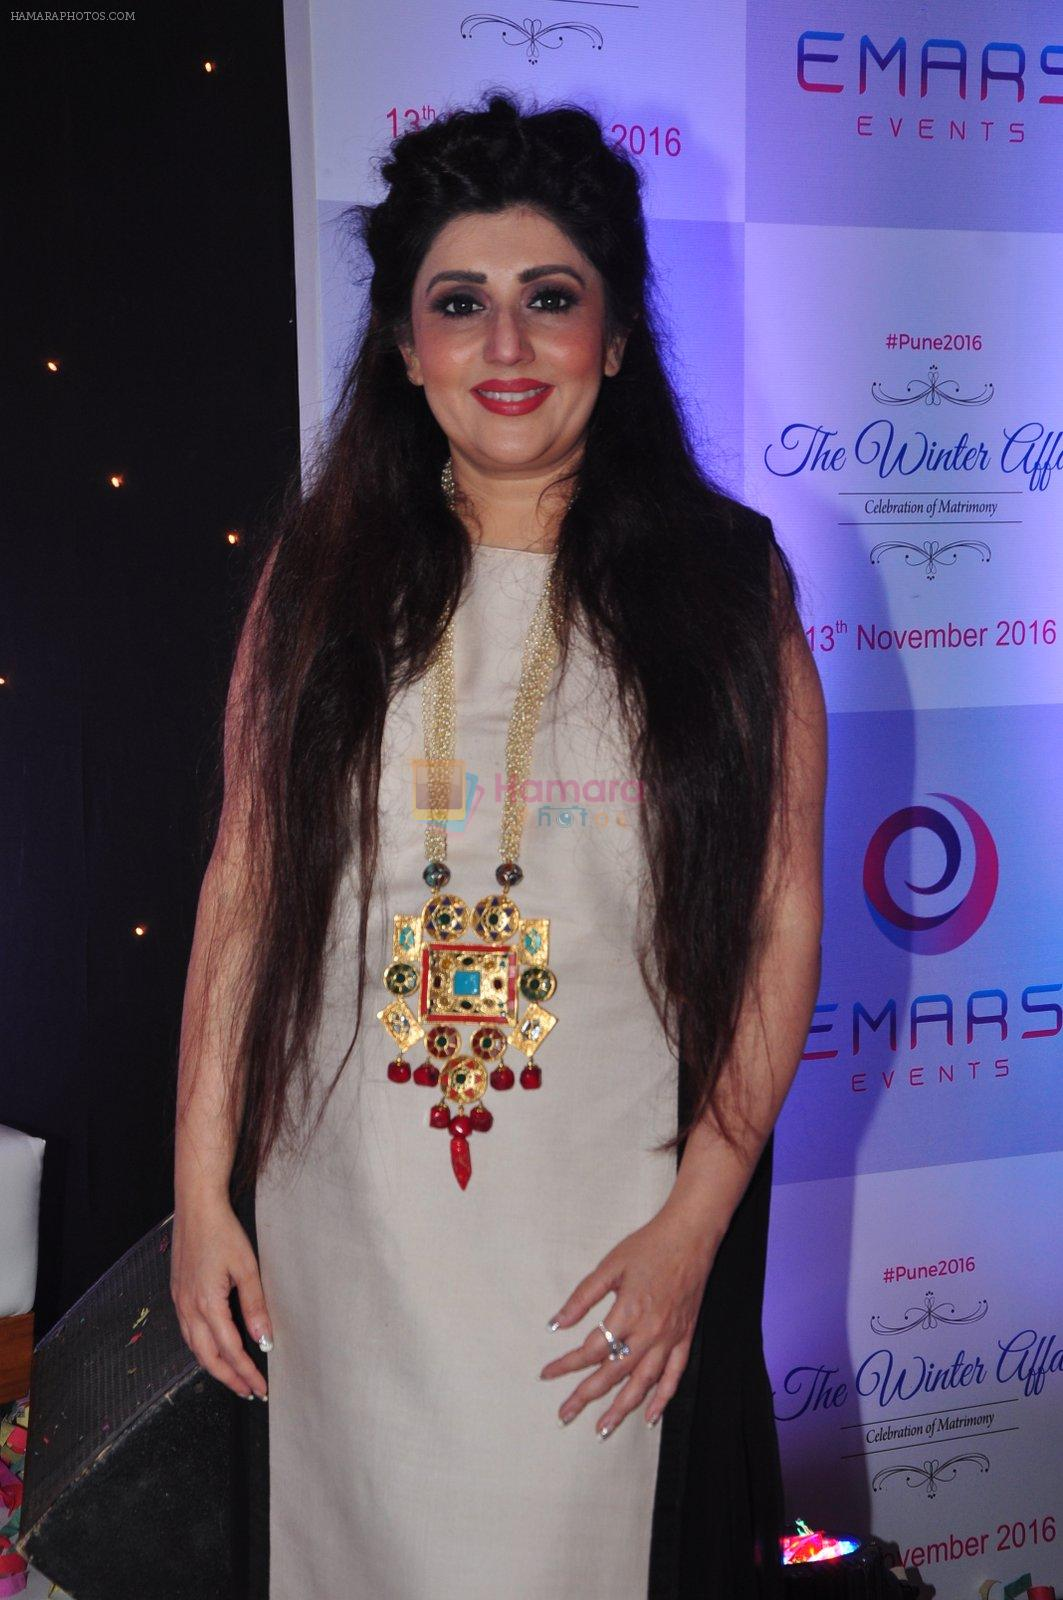 Archana Kochhar at the Emars events press conference in Pune on 18th Sept 2016